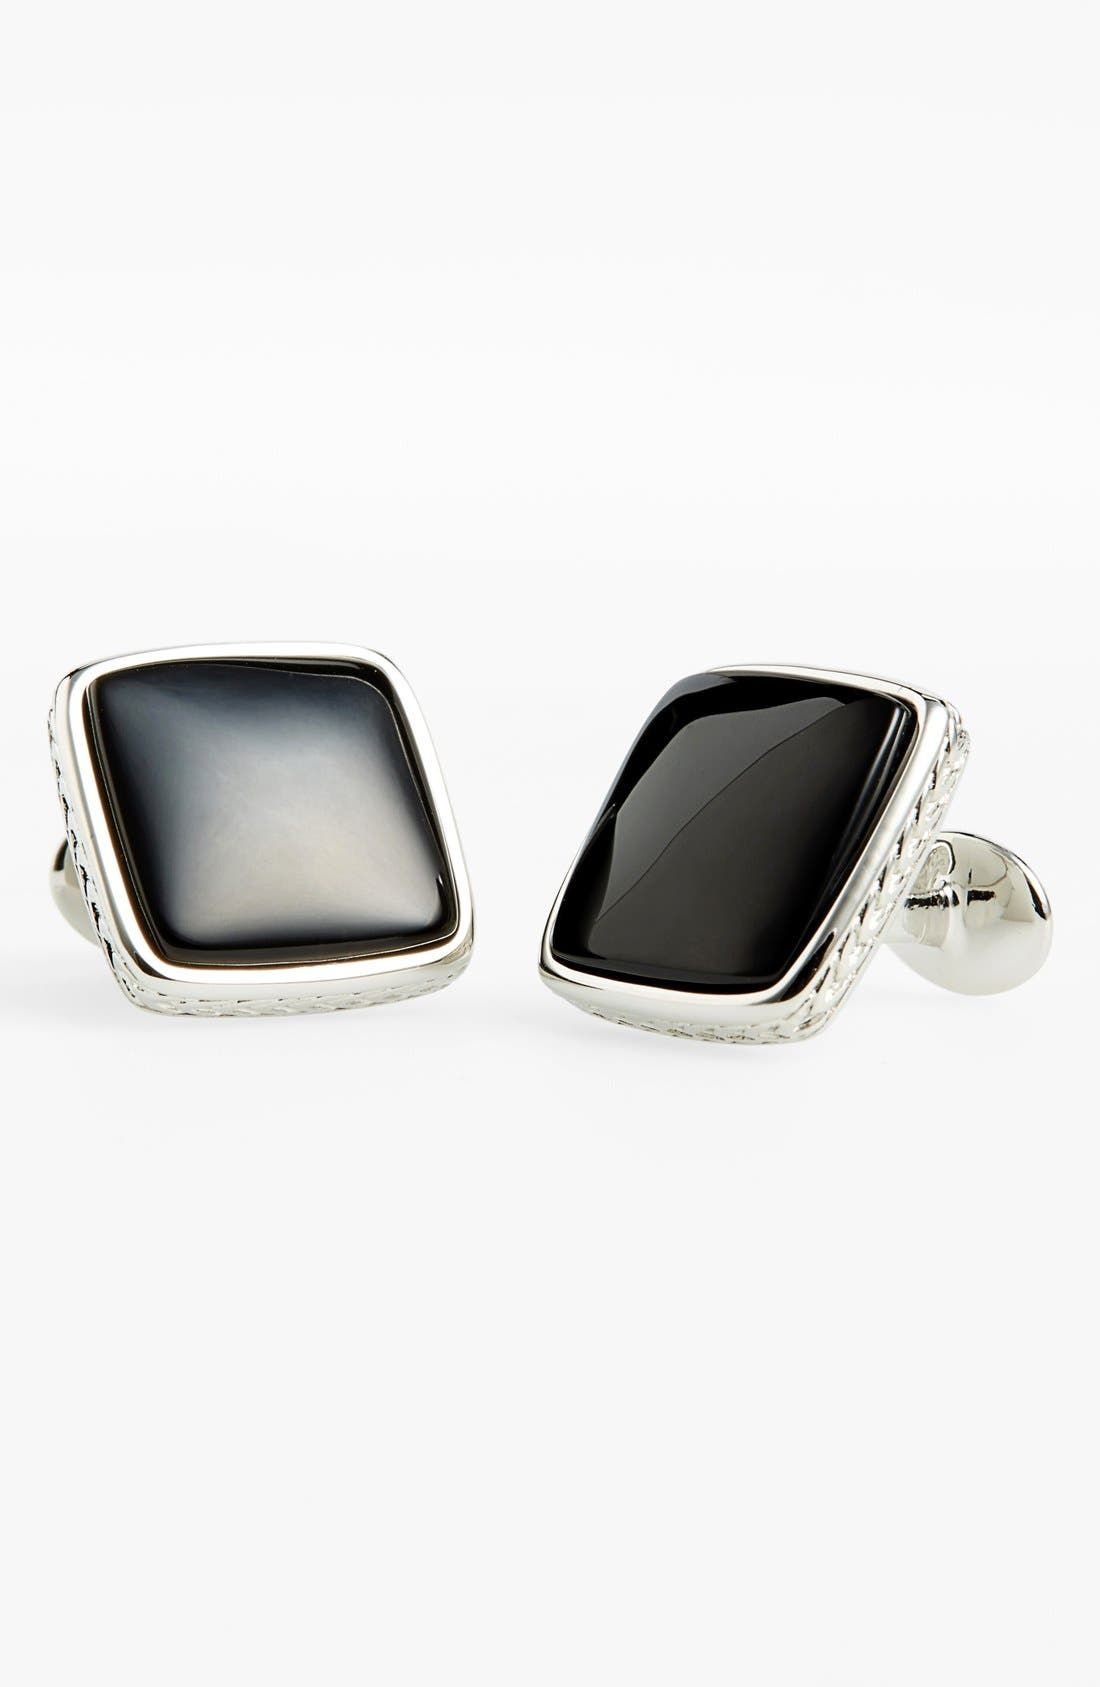 Onyx Cuff Links,                         Main,                         color, Sterling Silver/ Onyx